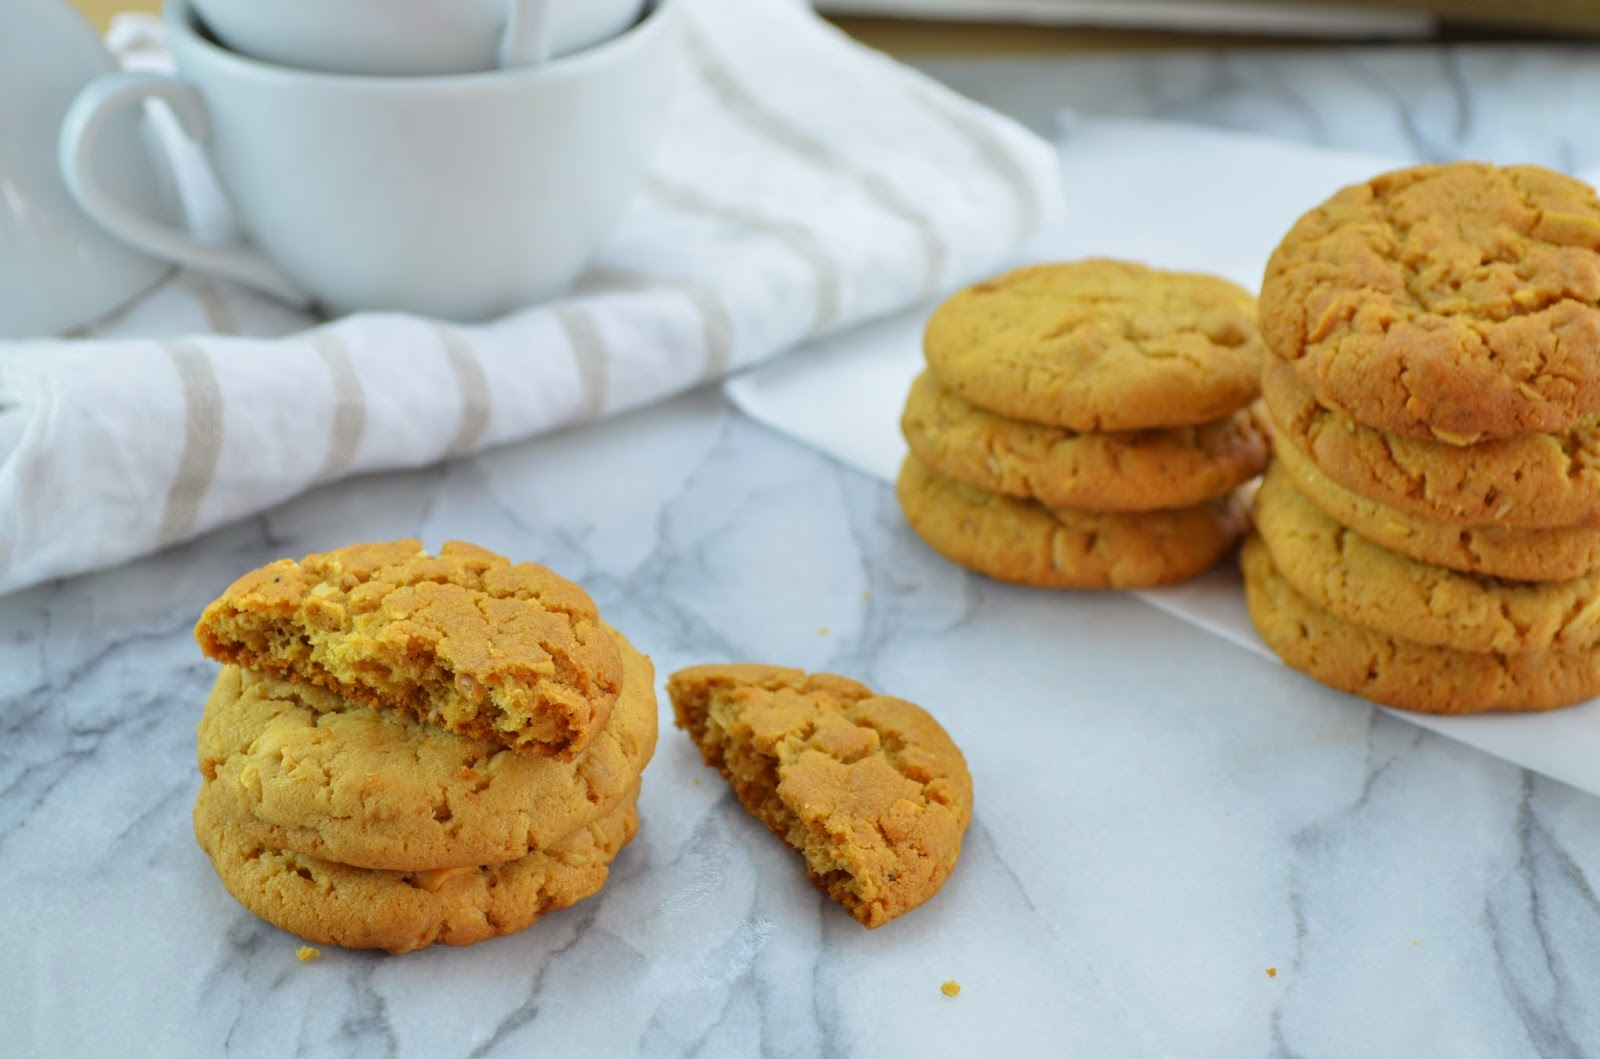 Peanut Butter and Toasted Oats Cookies - Smell of Rosemary.